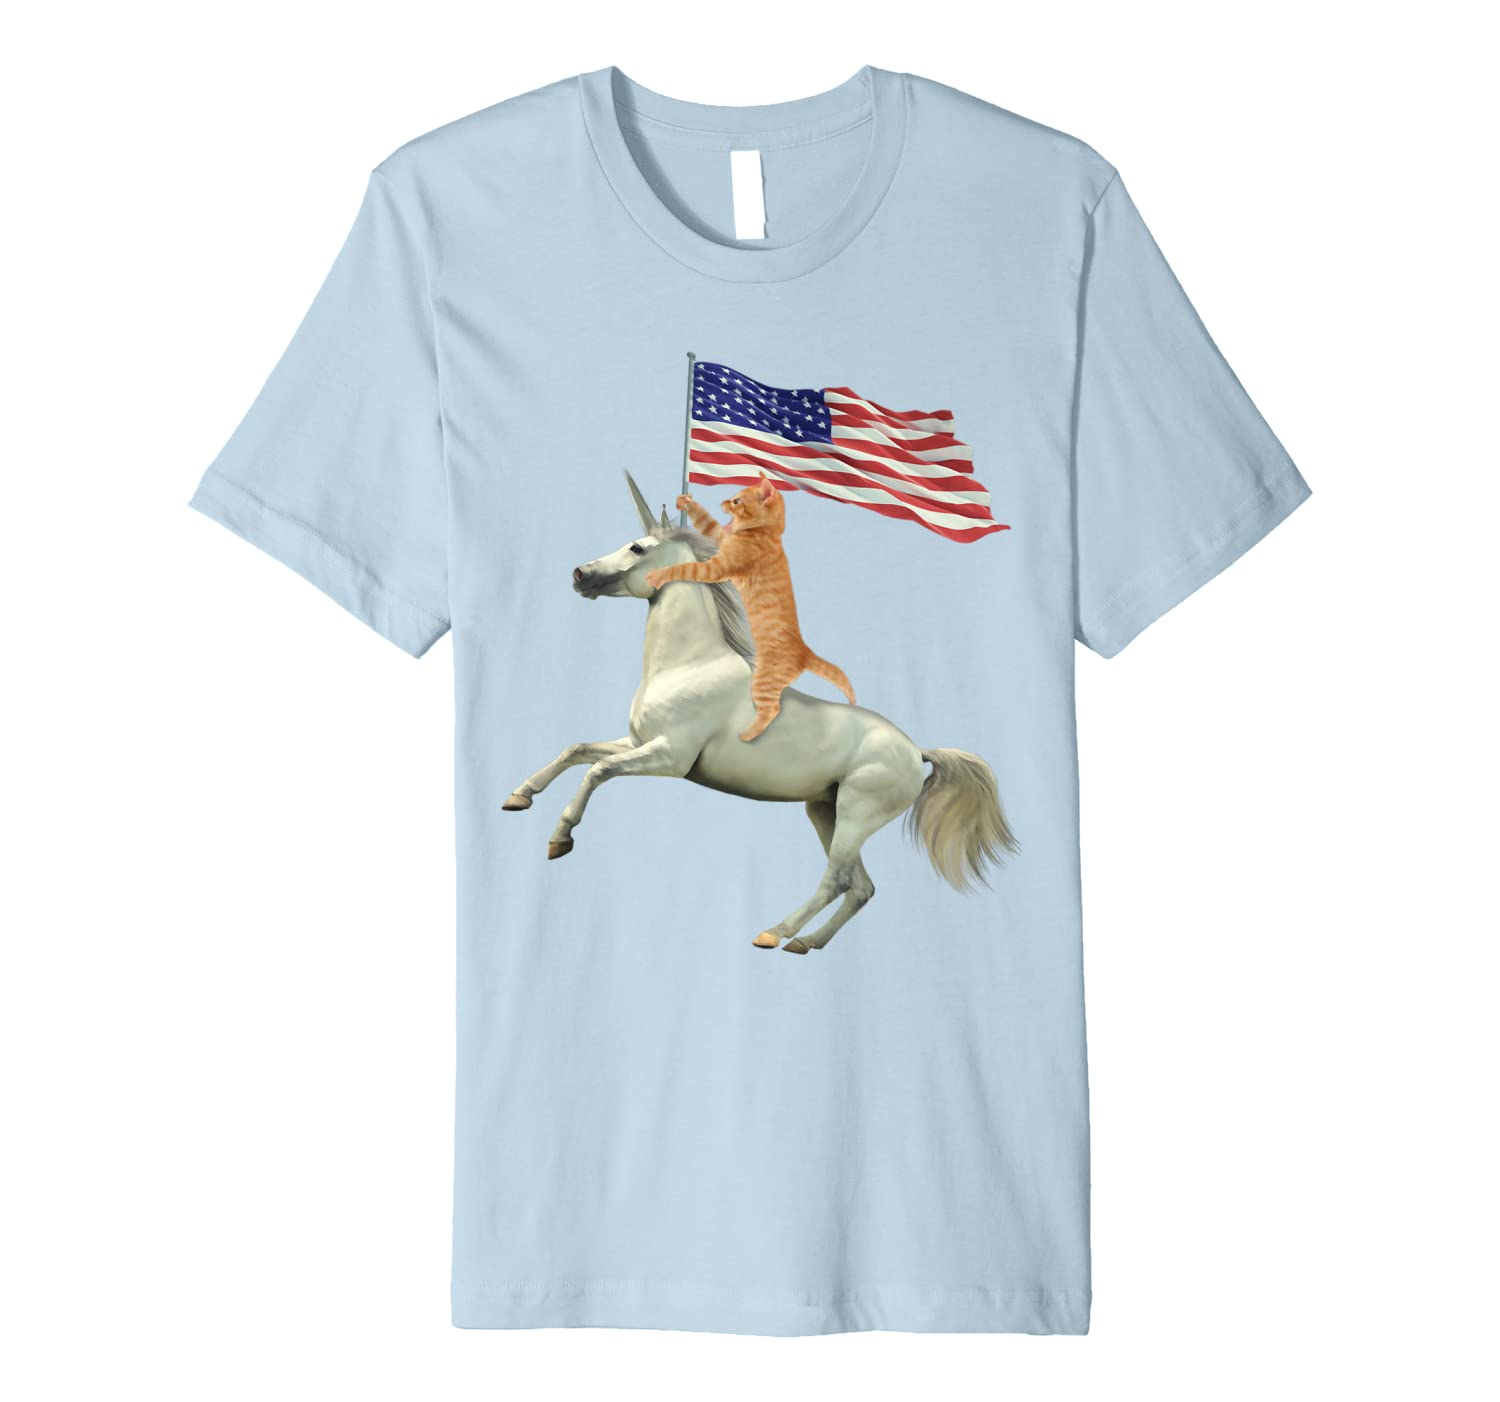 'Meowica Unicorn Cat' Funny July 4th Flag Shirt-ANZ